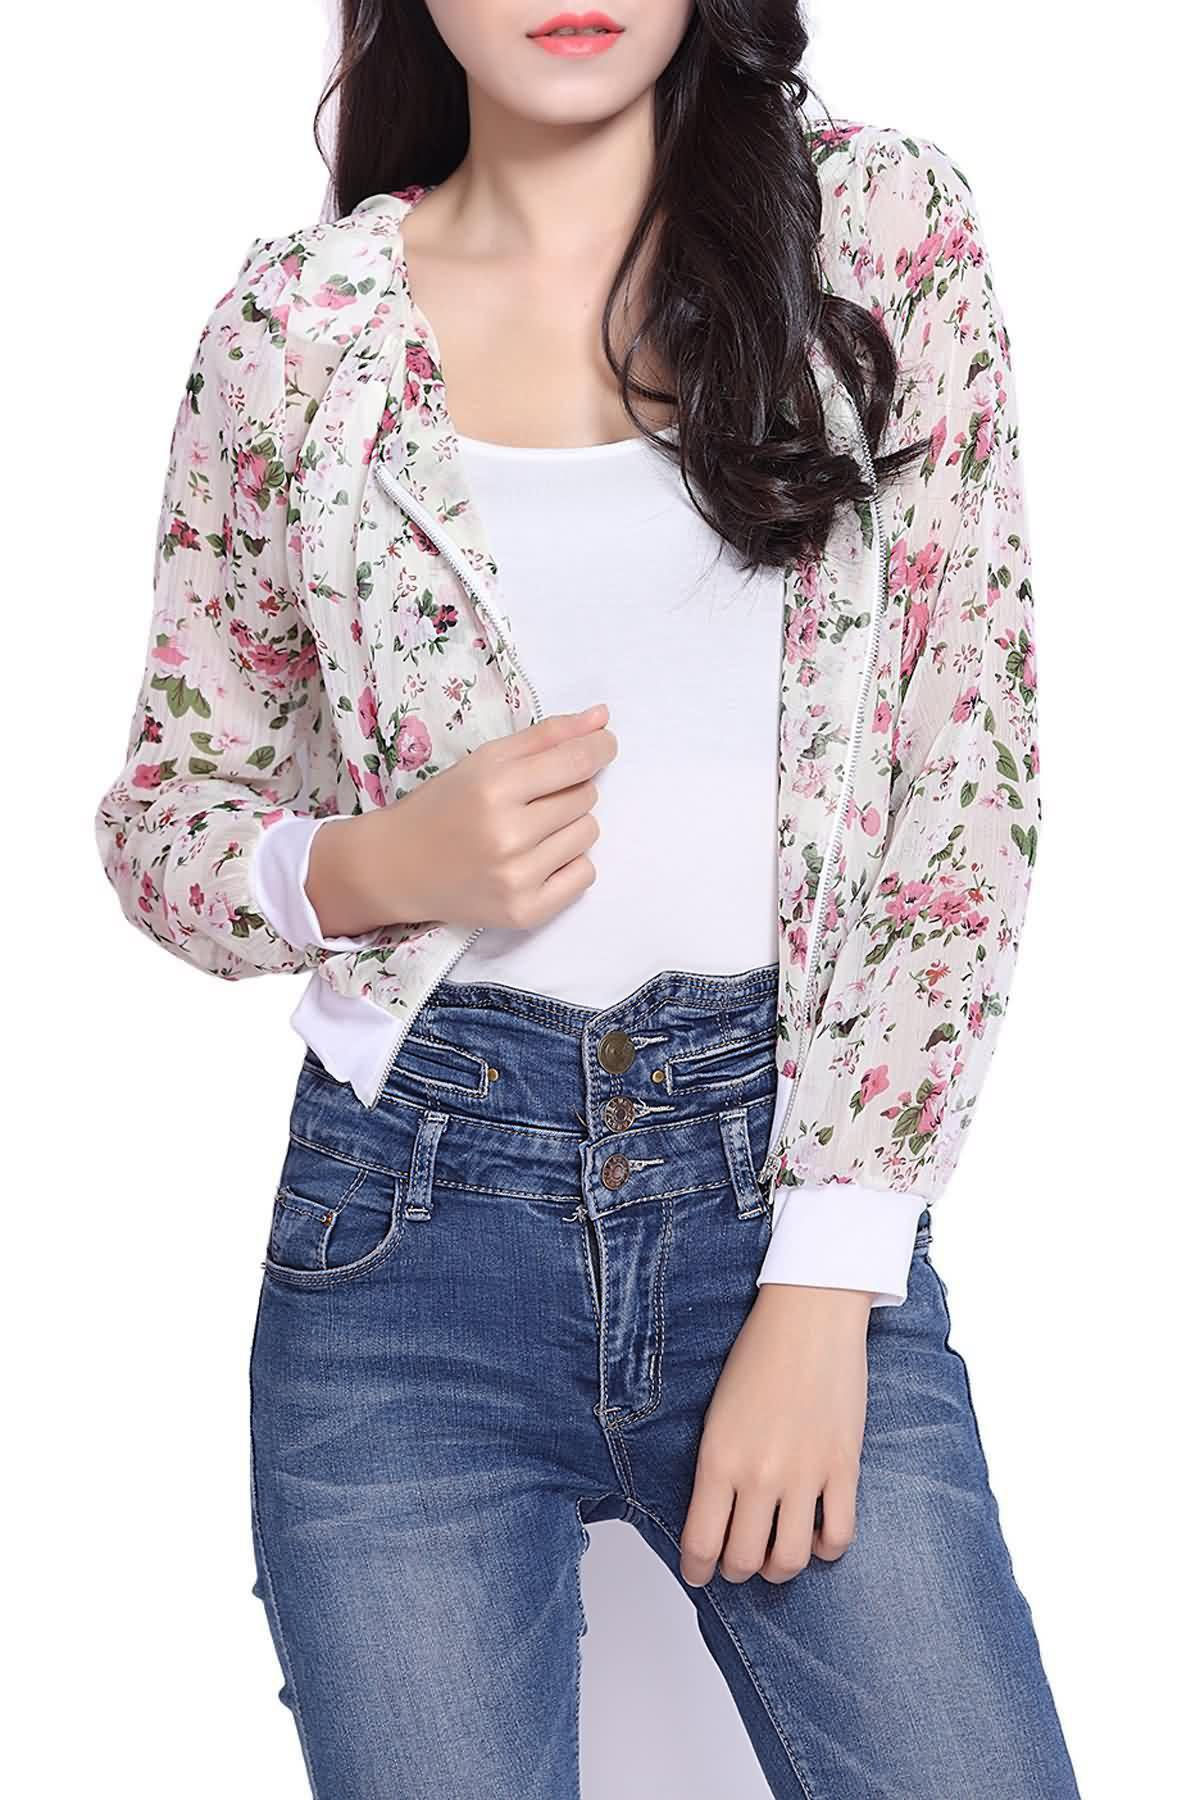 Online Stunning Scoop Neck Long Sleeves Floral Print Shrug Style Chiffon Women's Jacket